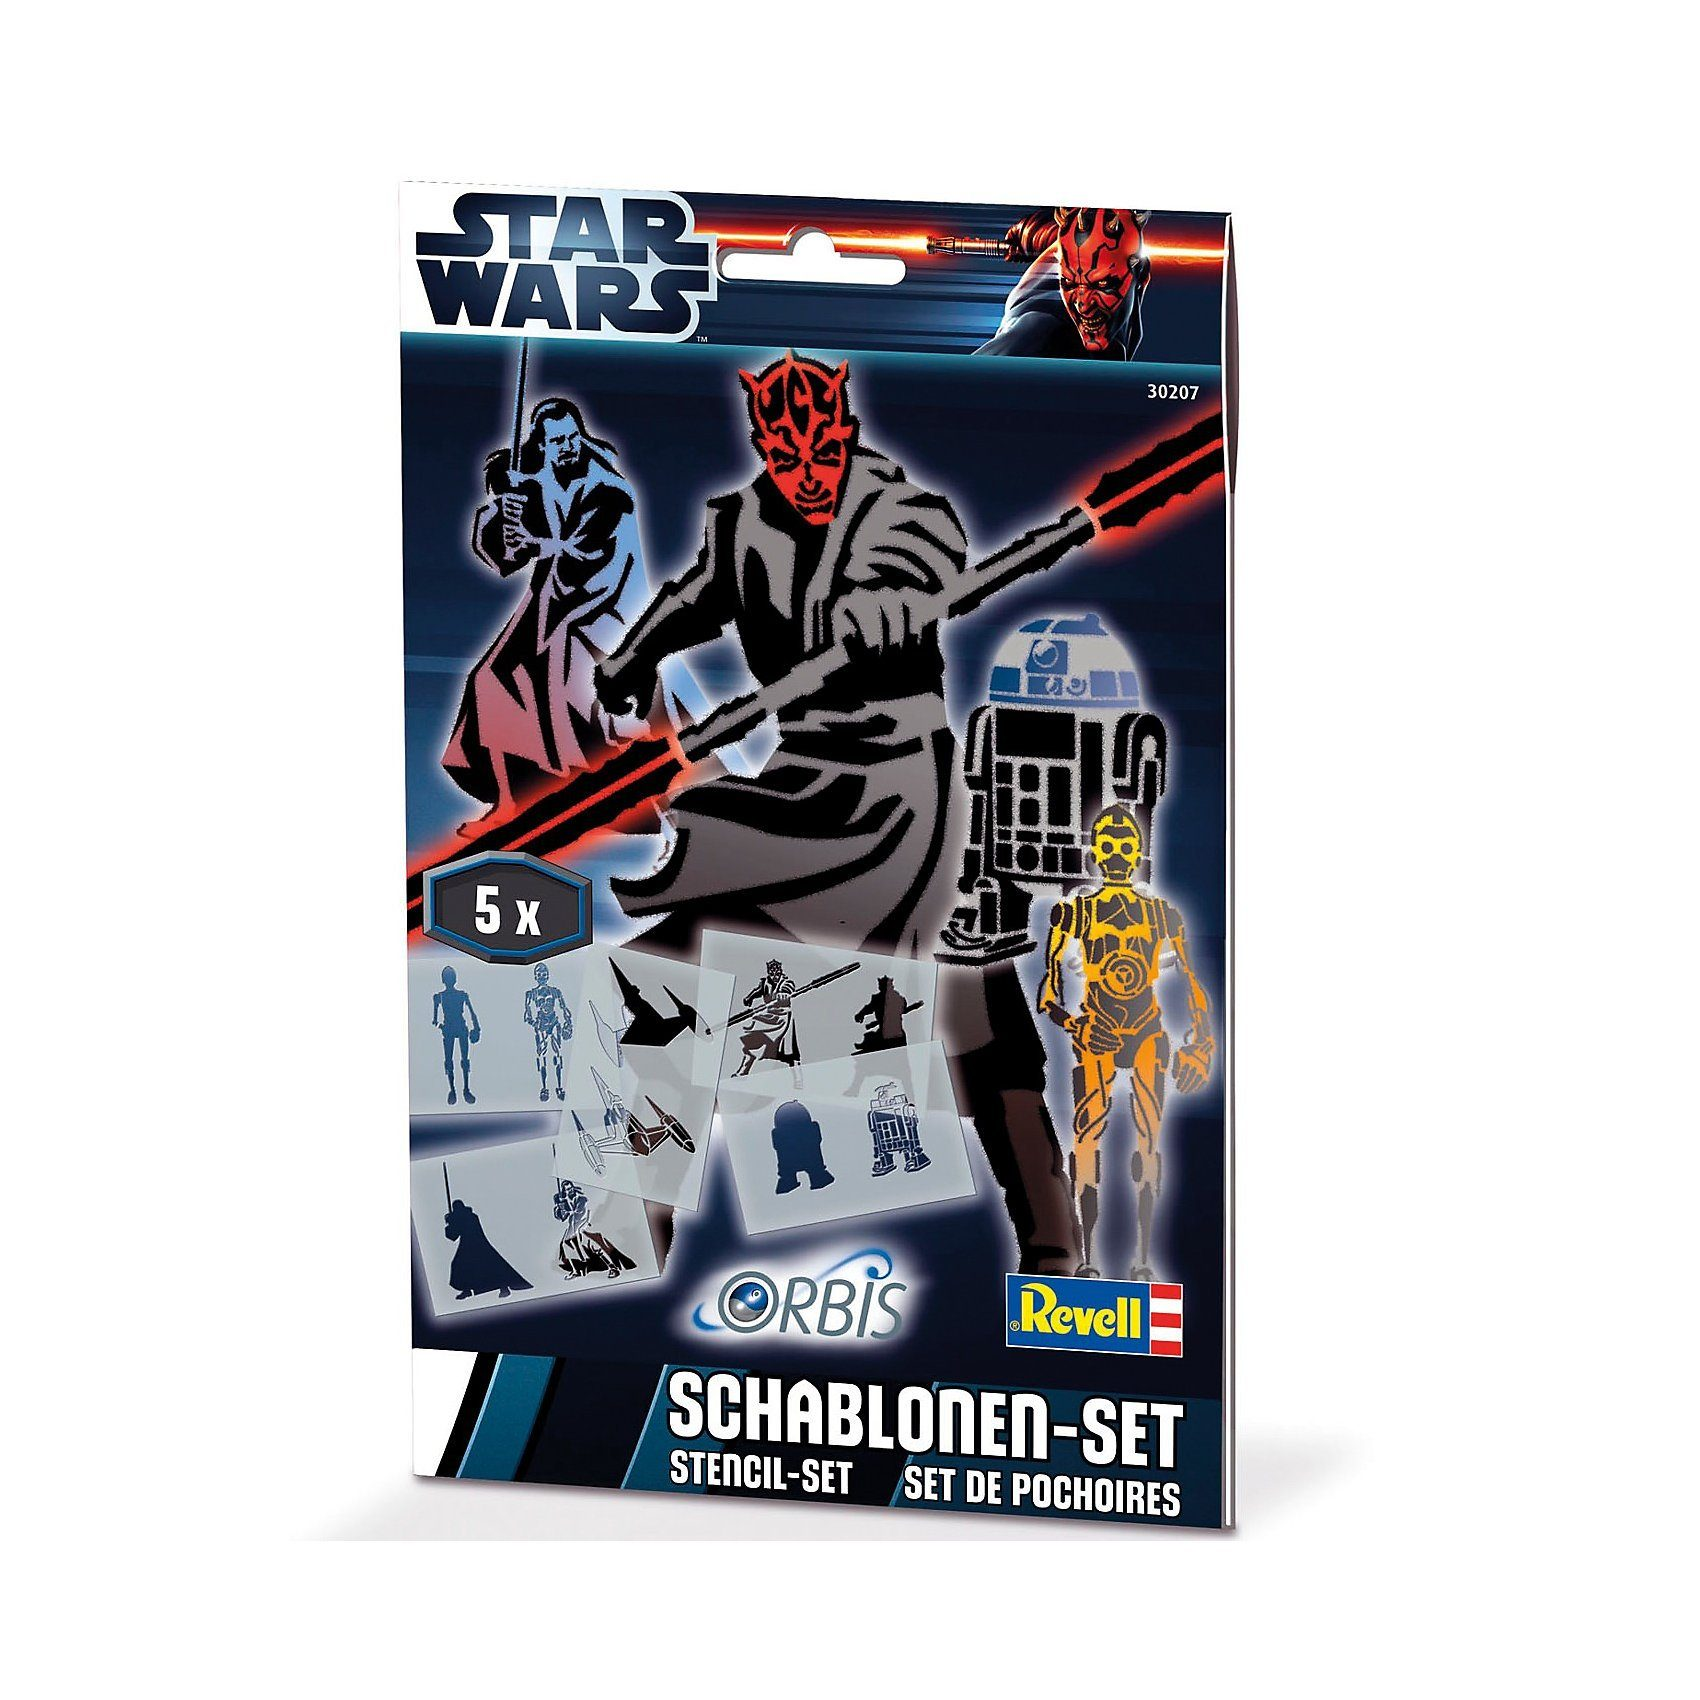 Revell Orbis 30207 Schablonen-Set Star Wars III